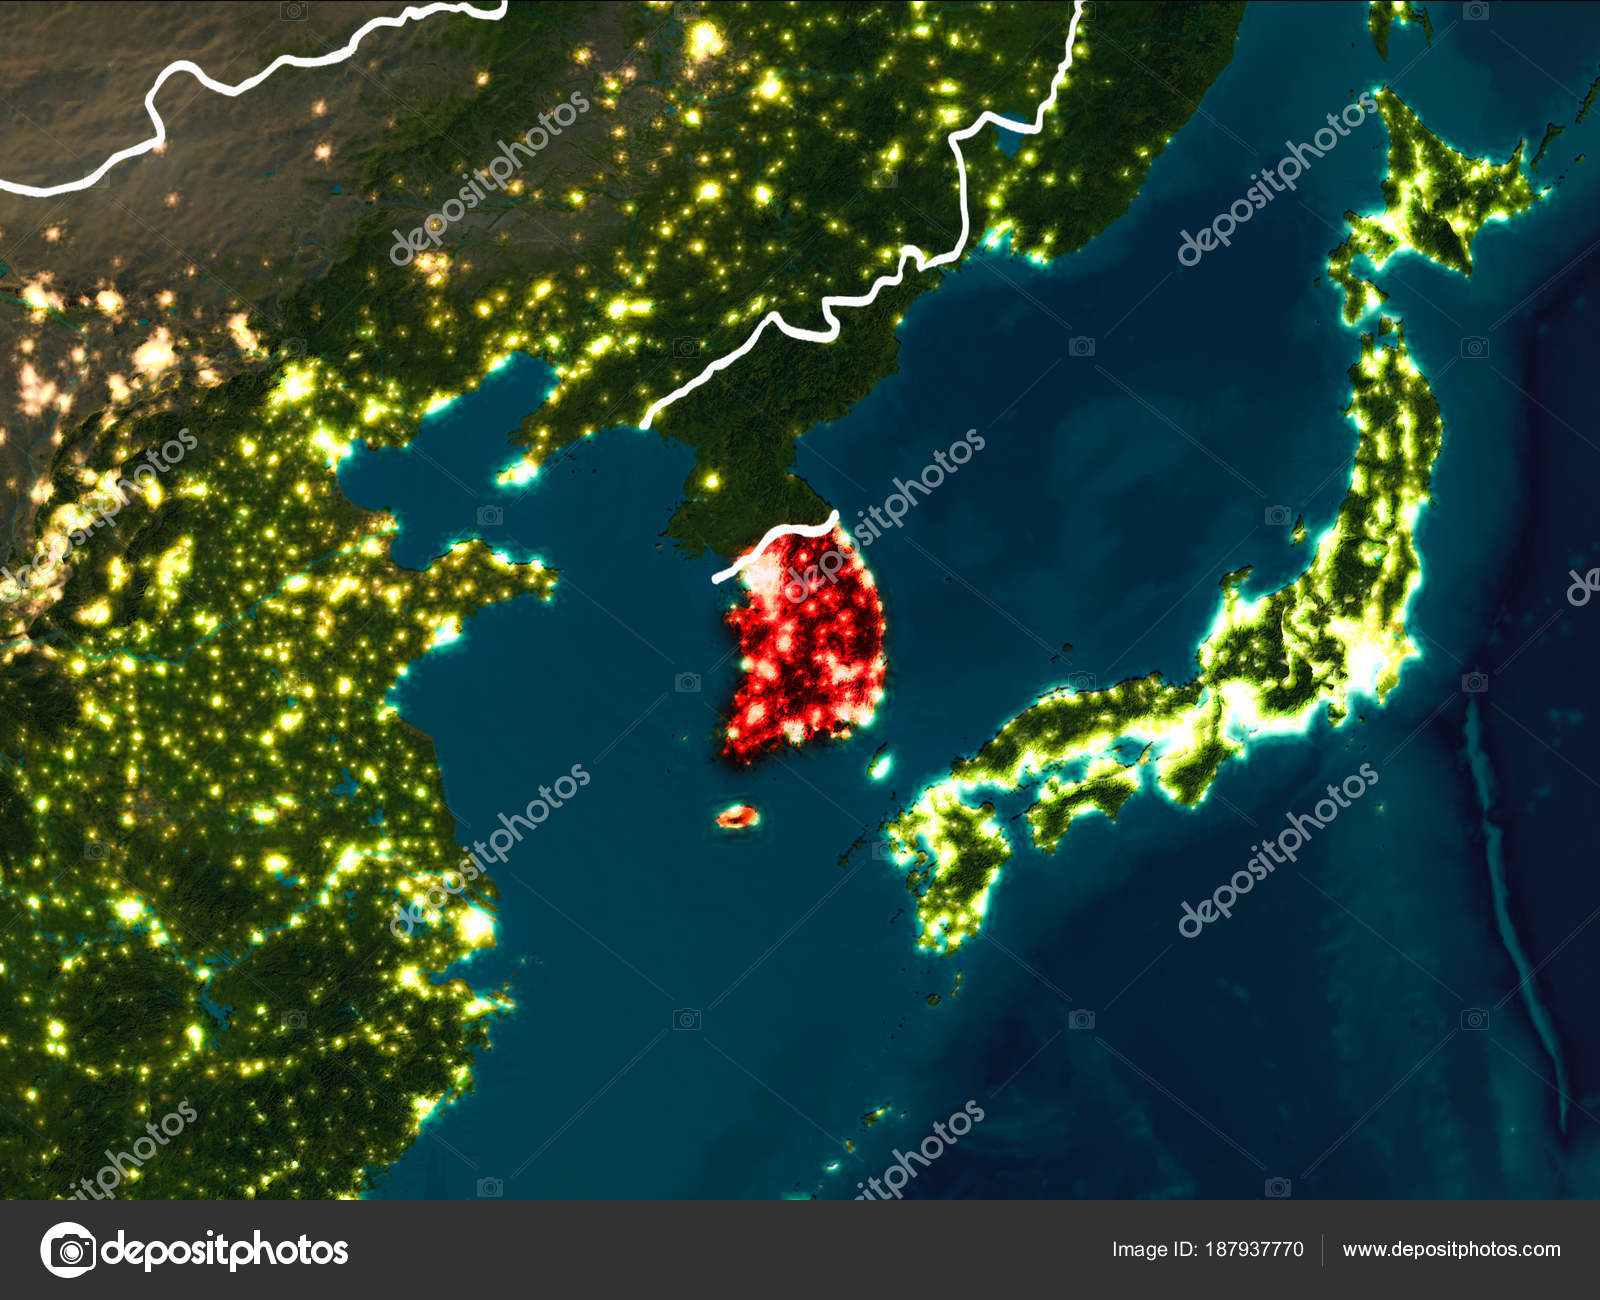 Map of south korea at night stock photo tomiger 187937770 south korea highlighted in red from earth orbit at night with visible country borders 3d illustration elements of this image furnished by nasa gumiabroncs Choice Image